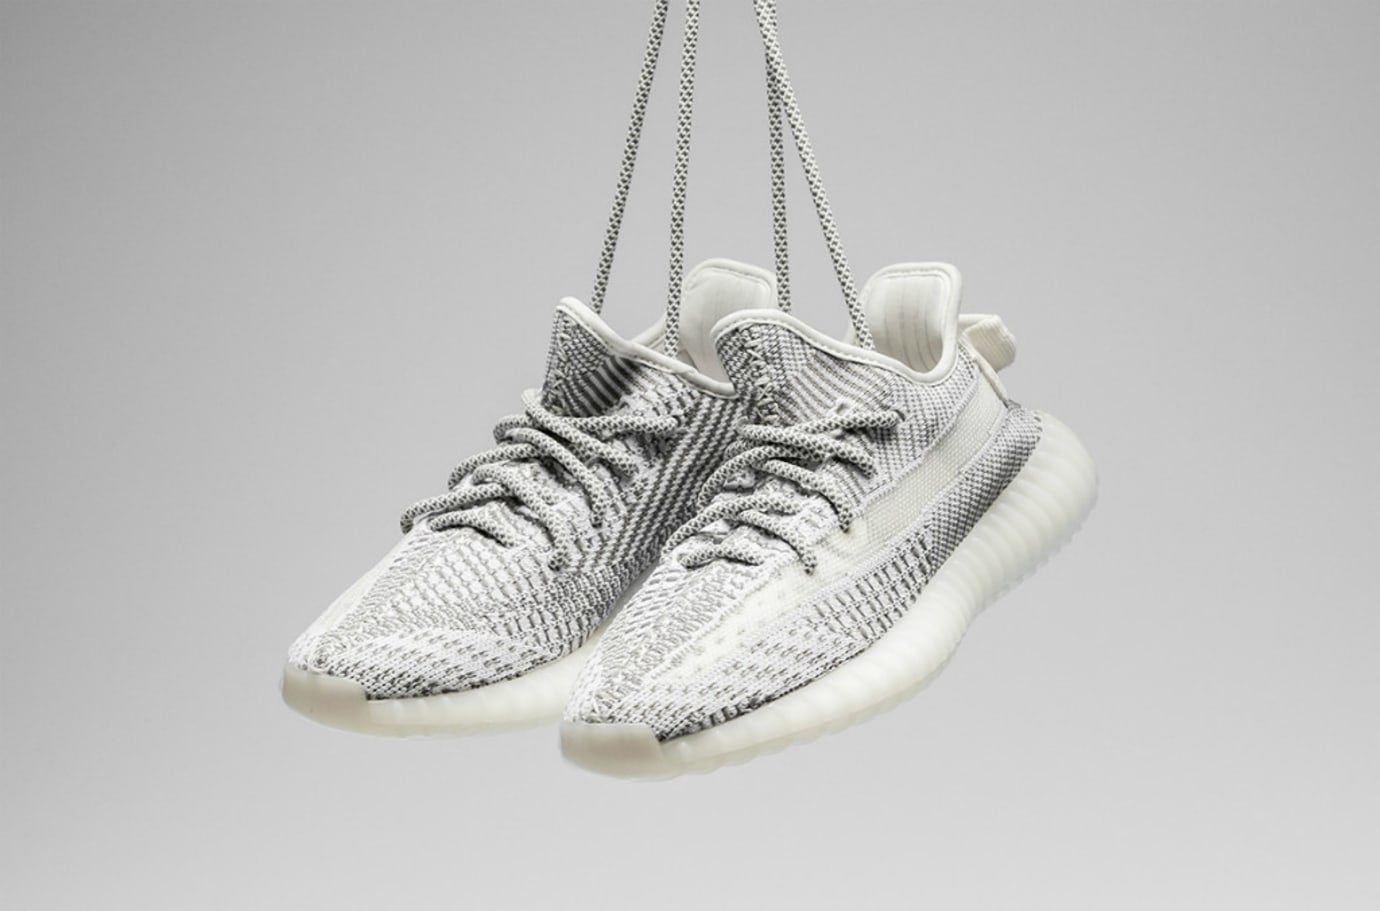 662c9547827 Image via Stadium Goods adidas-yeezy-boost-350-v2-static-release-date-